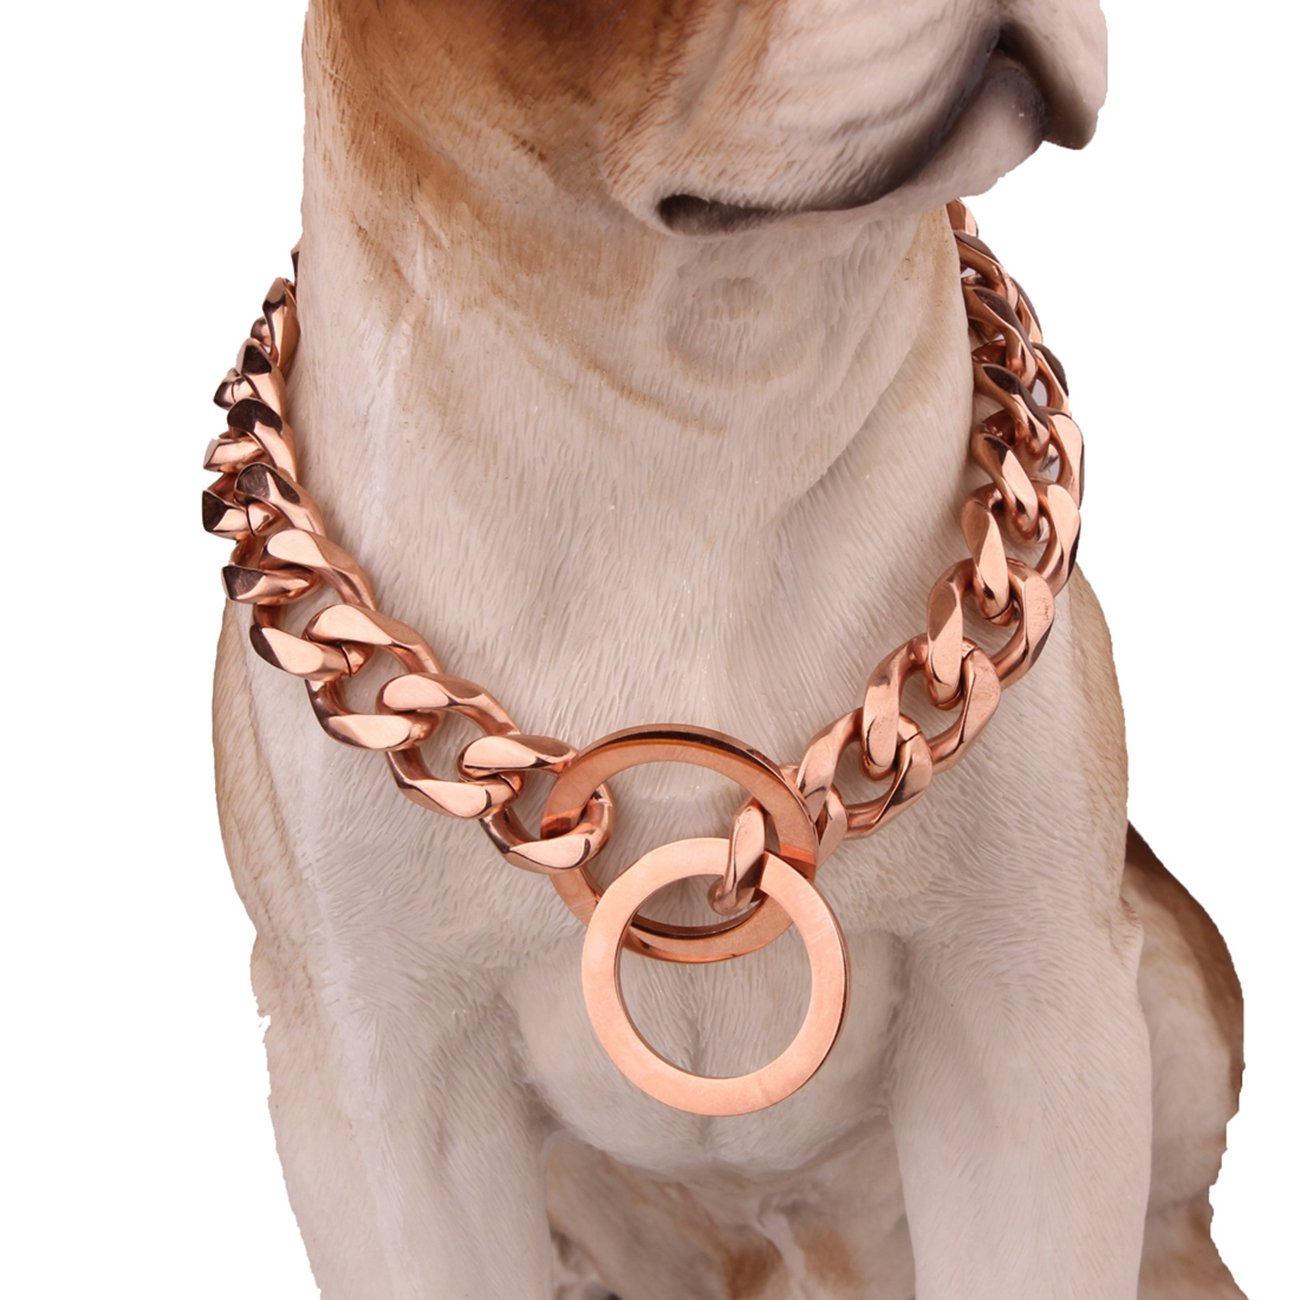 Jewelry Kingdom 1 Heavy Metal 15/17/19mm Solid Rose Gold Stainless Steel Curb Chain Pet Dog Choke for Pit Bull, Mastiff, Big Breeds 12-34 Inches (19mm Wide, 26inch Recommend Dog's Neck 22inch)